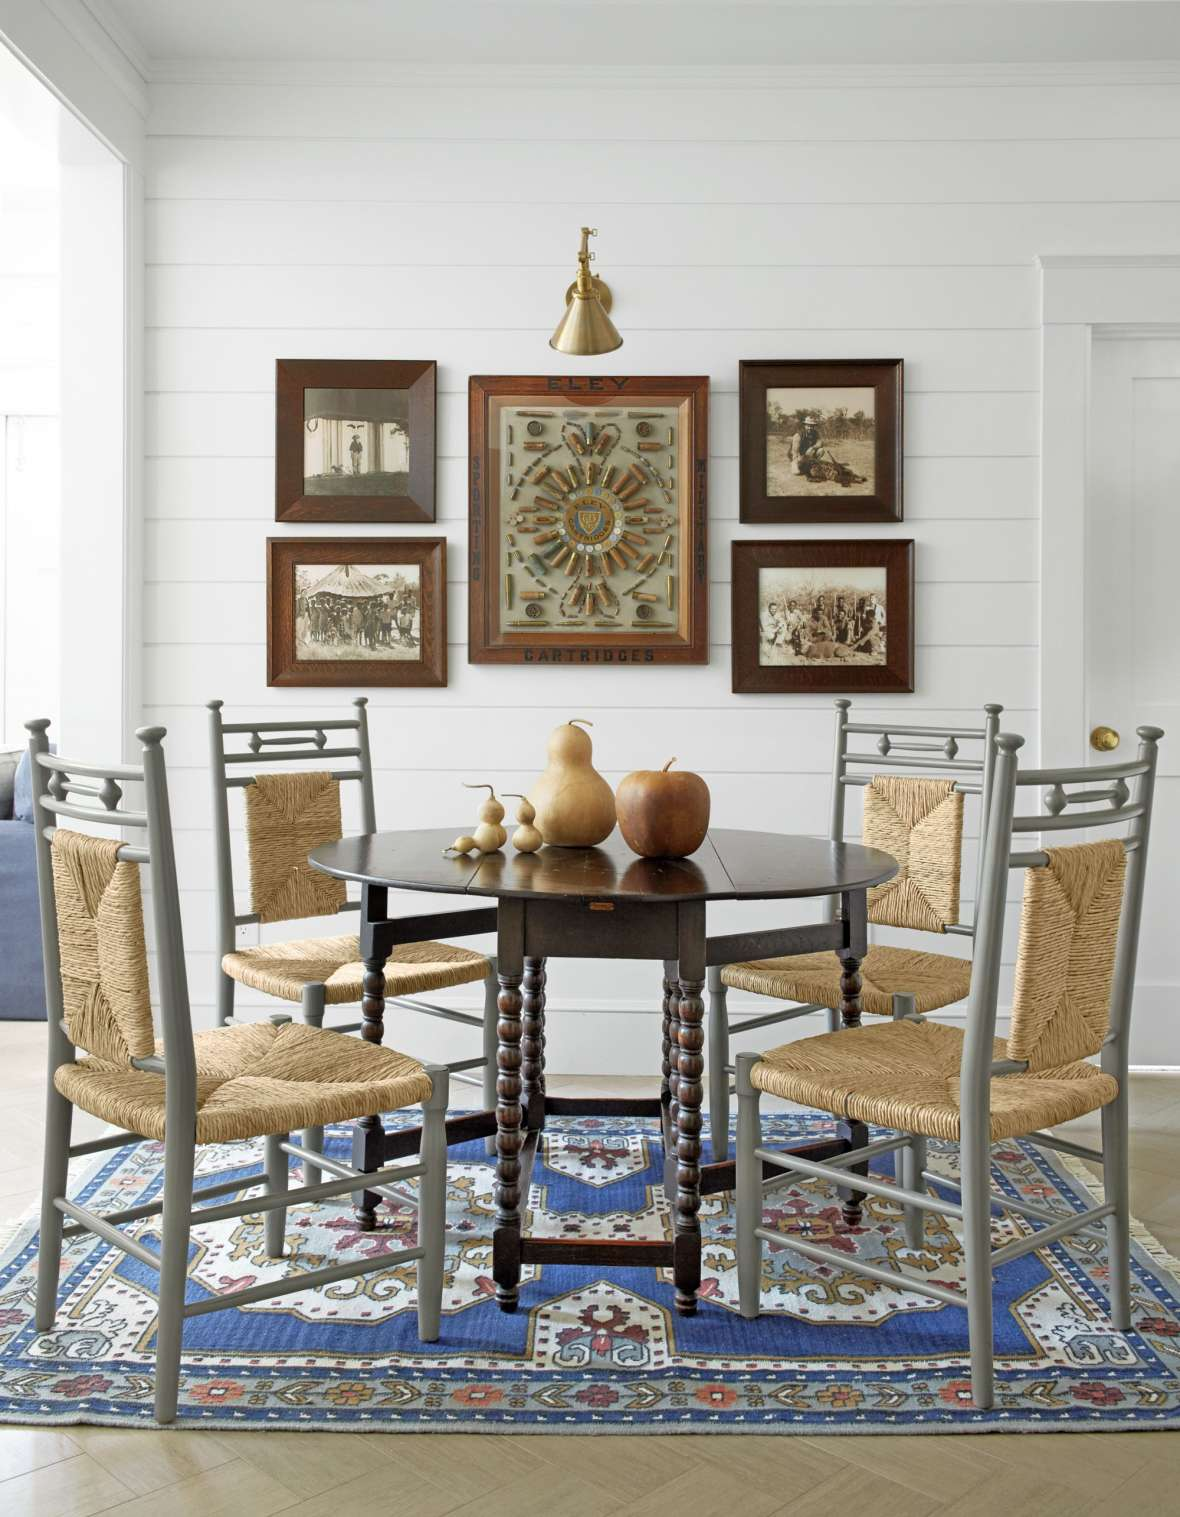 dining room accent pieces meilleur scpi easy fall decorating ideas autumn decor tips try table dividers office storage gold lamp target winsome wicker patio and chairs outdoor